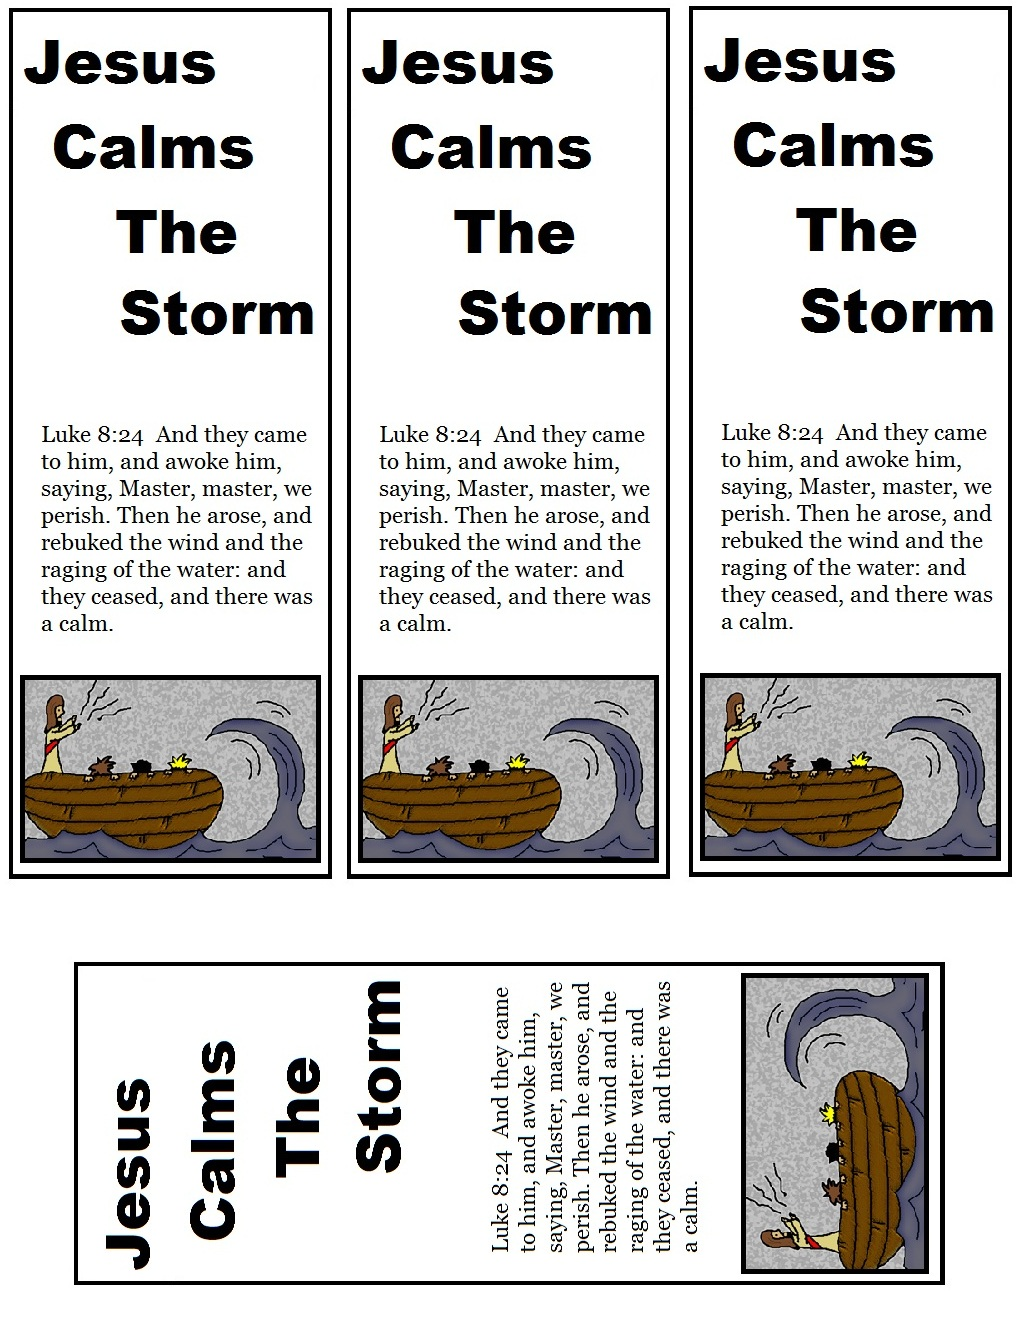 Free coloring pages jesus calms the storm - Jesus Calms The Storm Bookmarks Colored